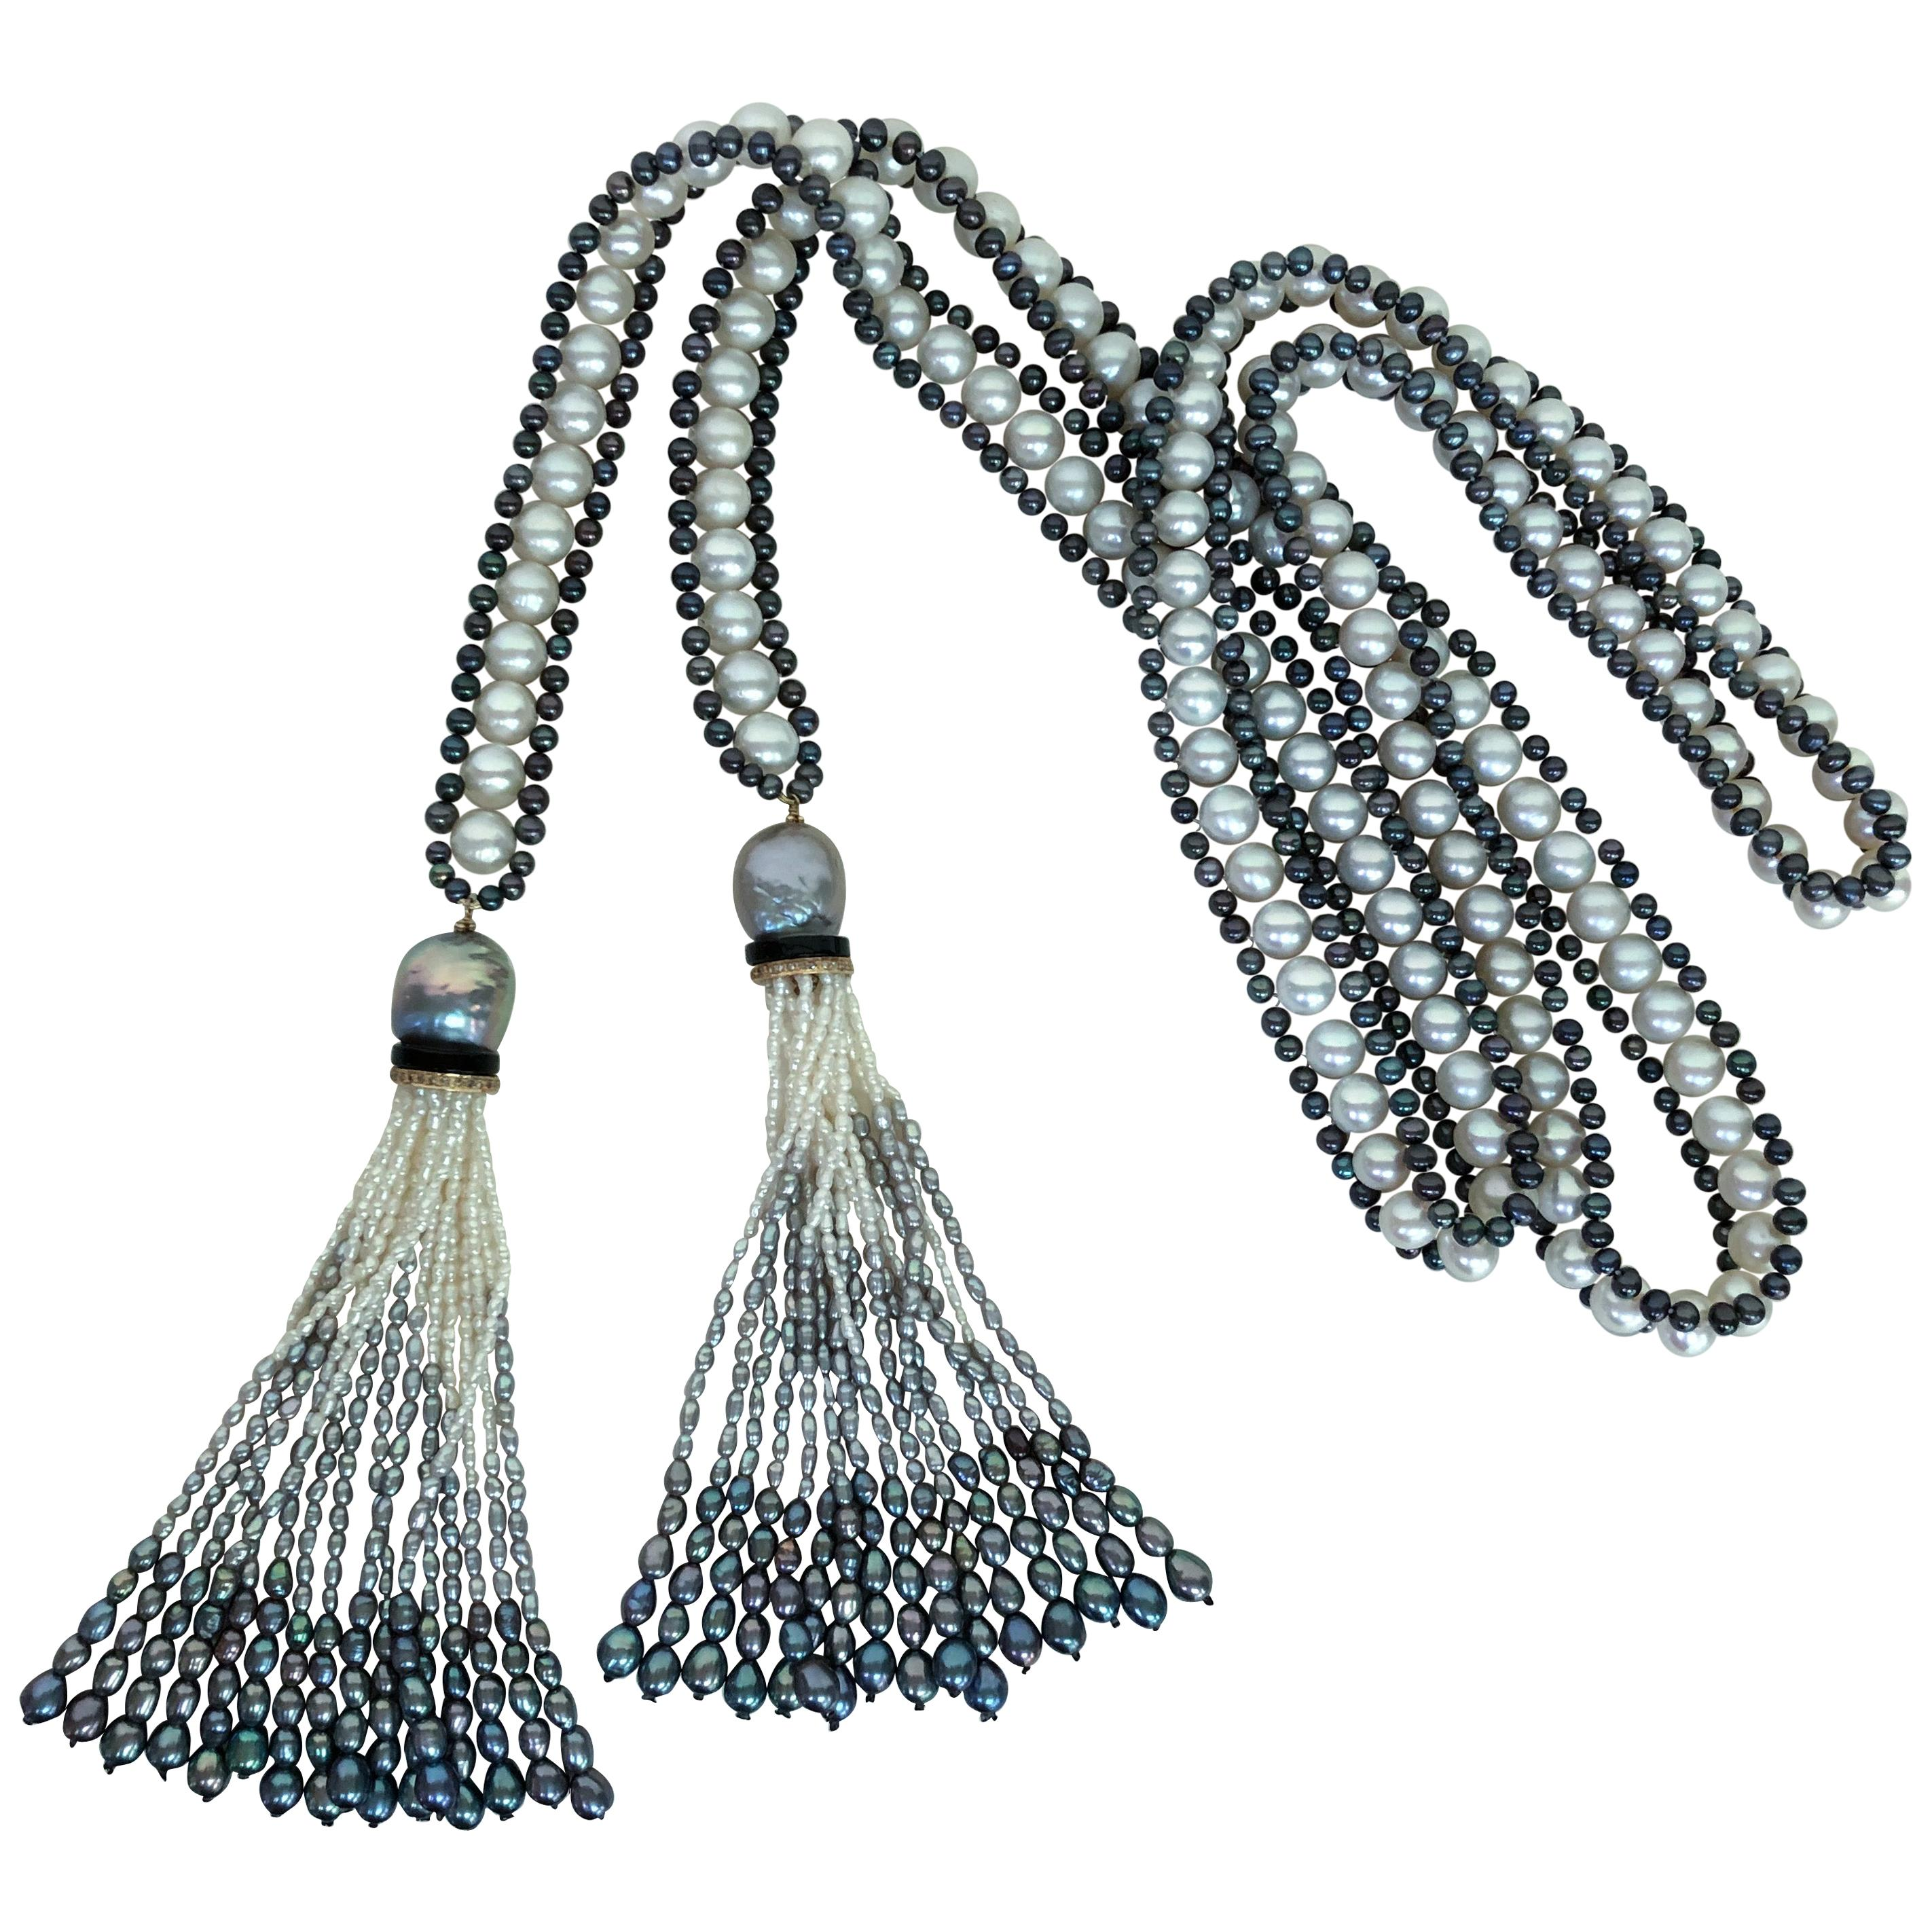 Marina J. White, Black and Grey Pearl Sautoir with Ombre Graduated Tassels